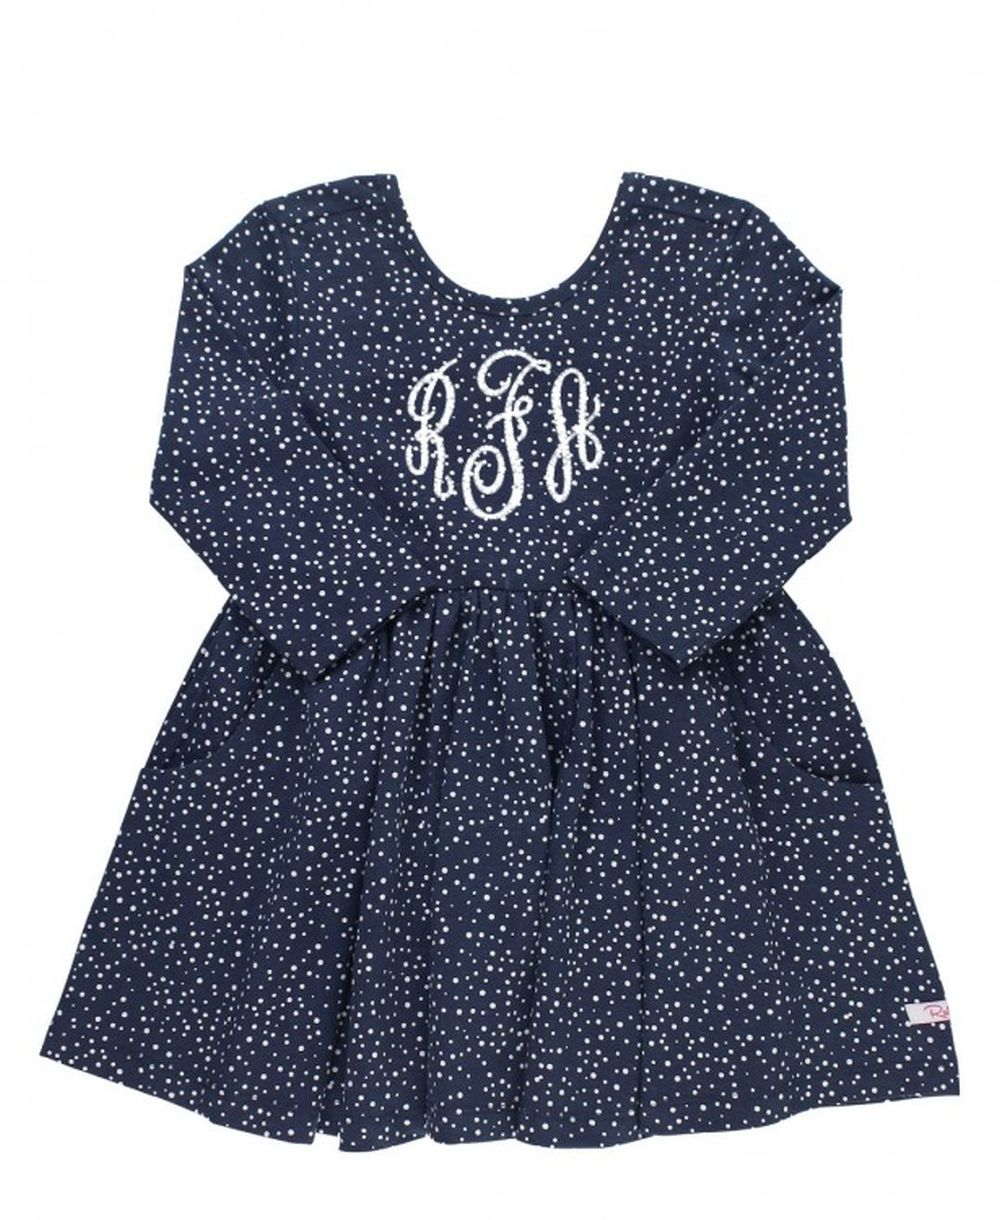 Twirl Dress Navy with Polkadots